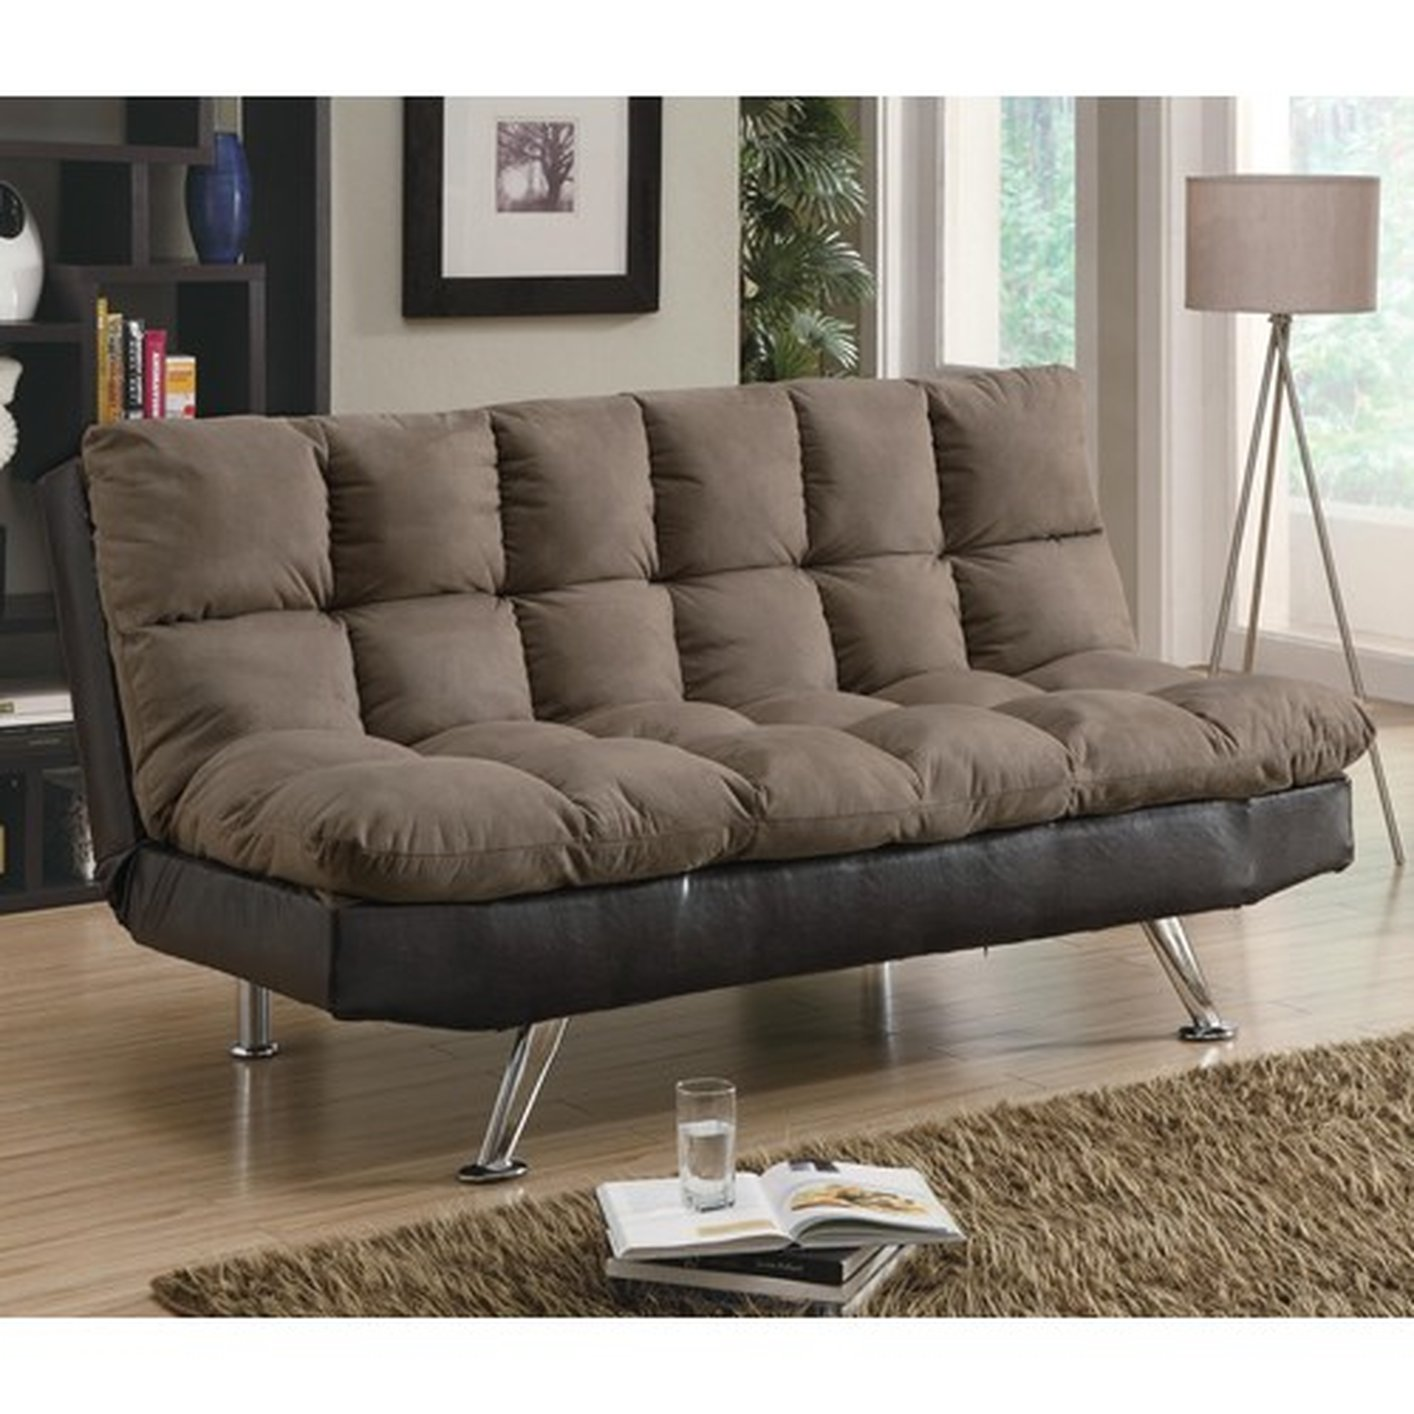 Coaster 300306 brown fabric sofa bed steal a sofa for Brown fabric couch